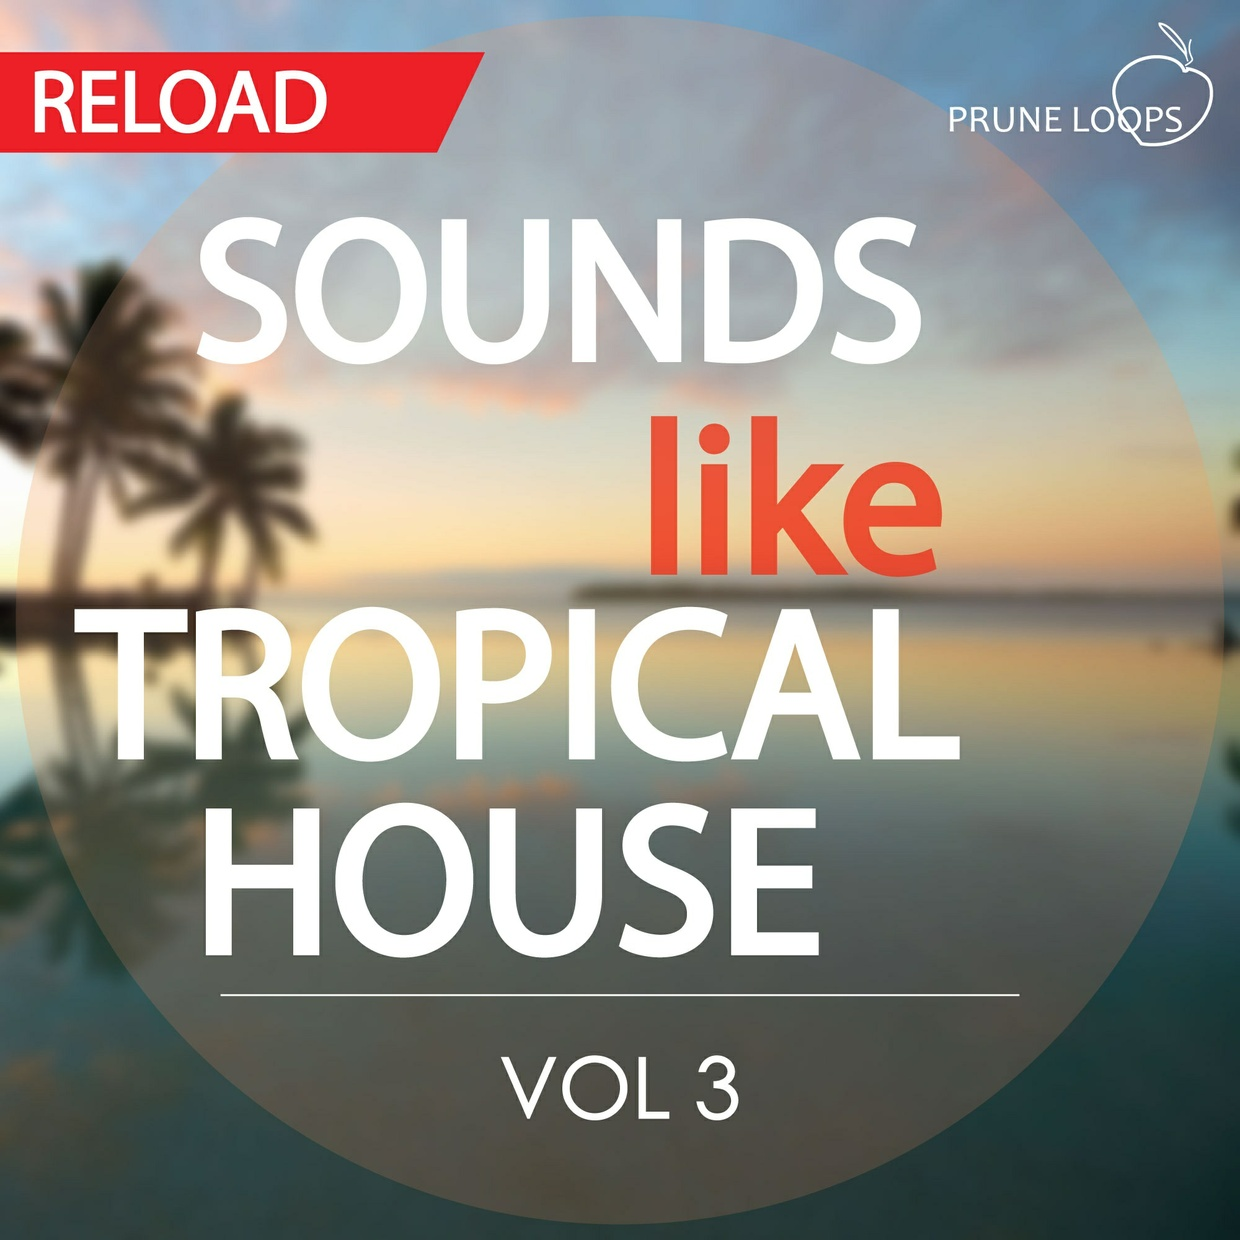 Sounds Like Tropical House Vol 3 Reloaded